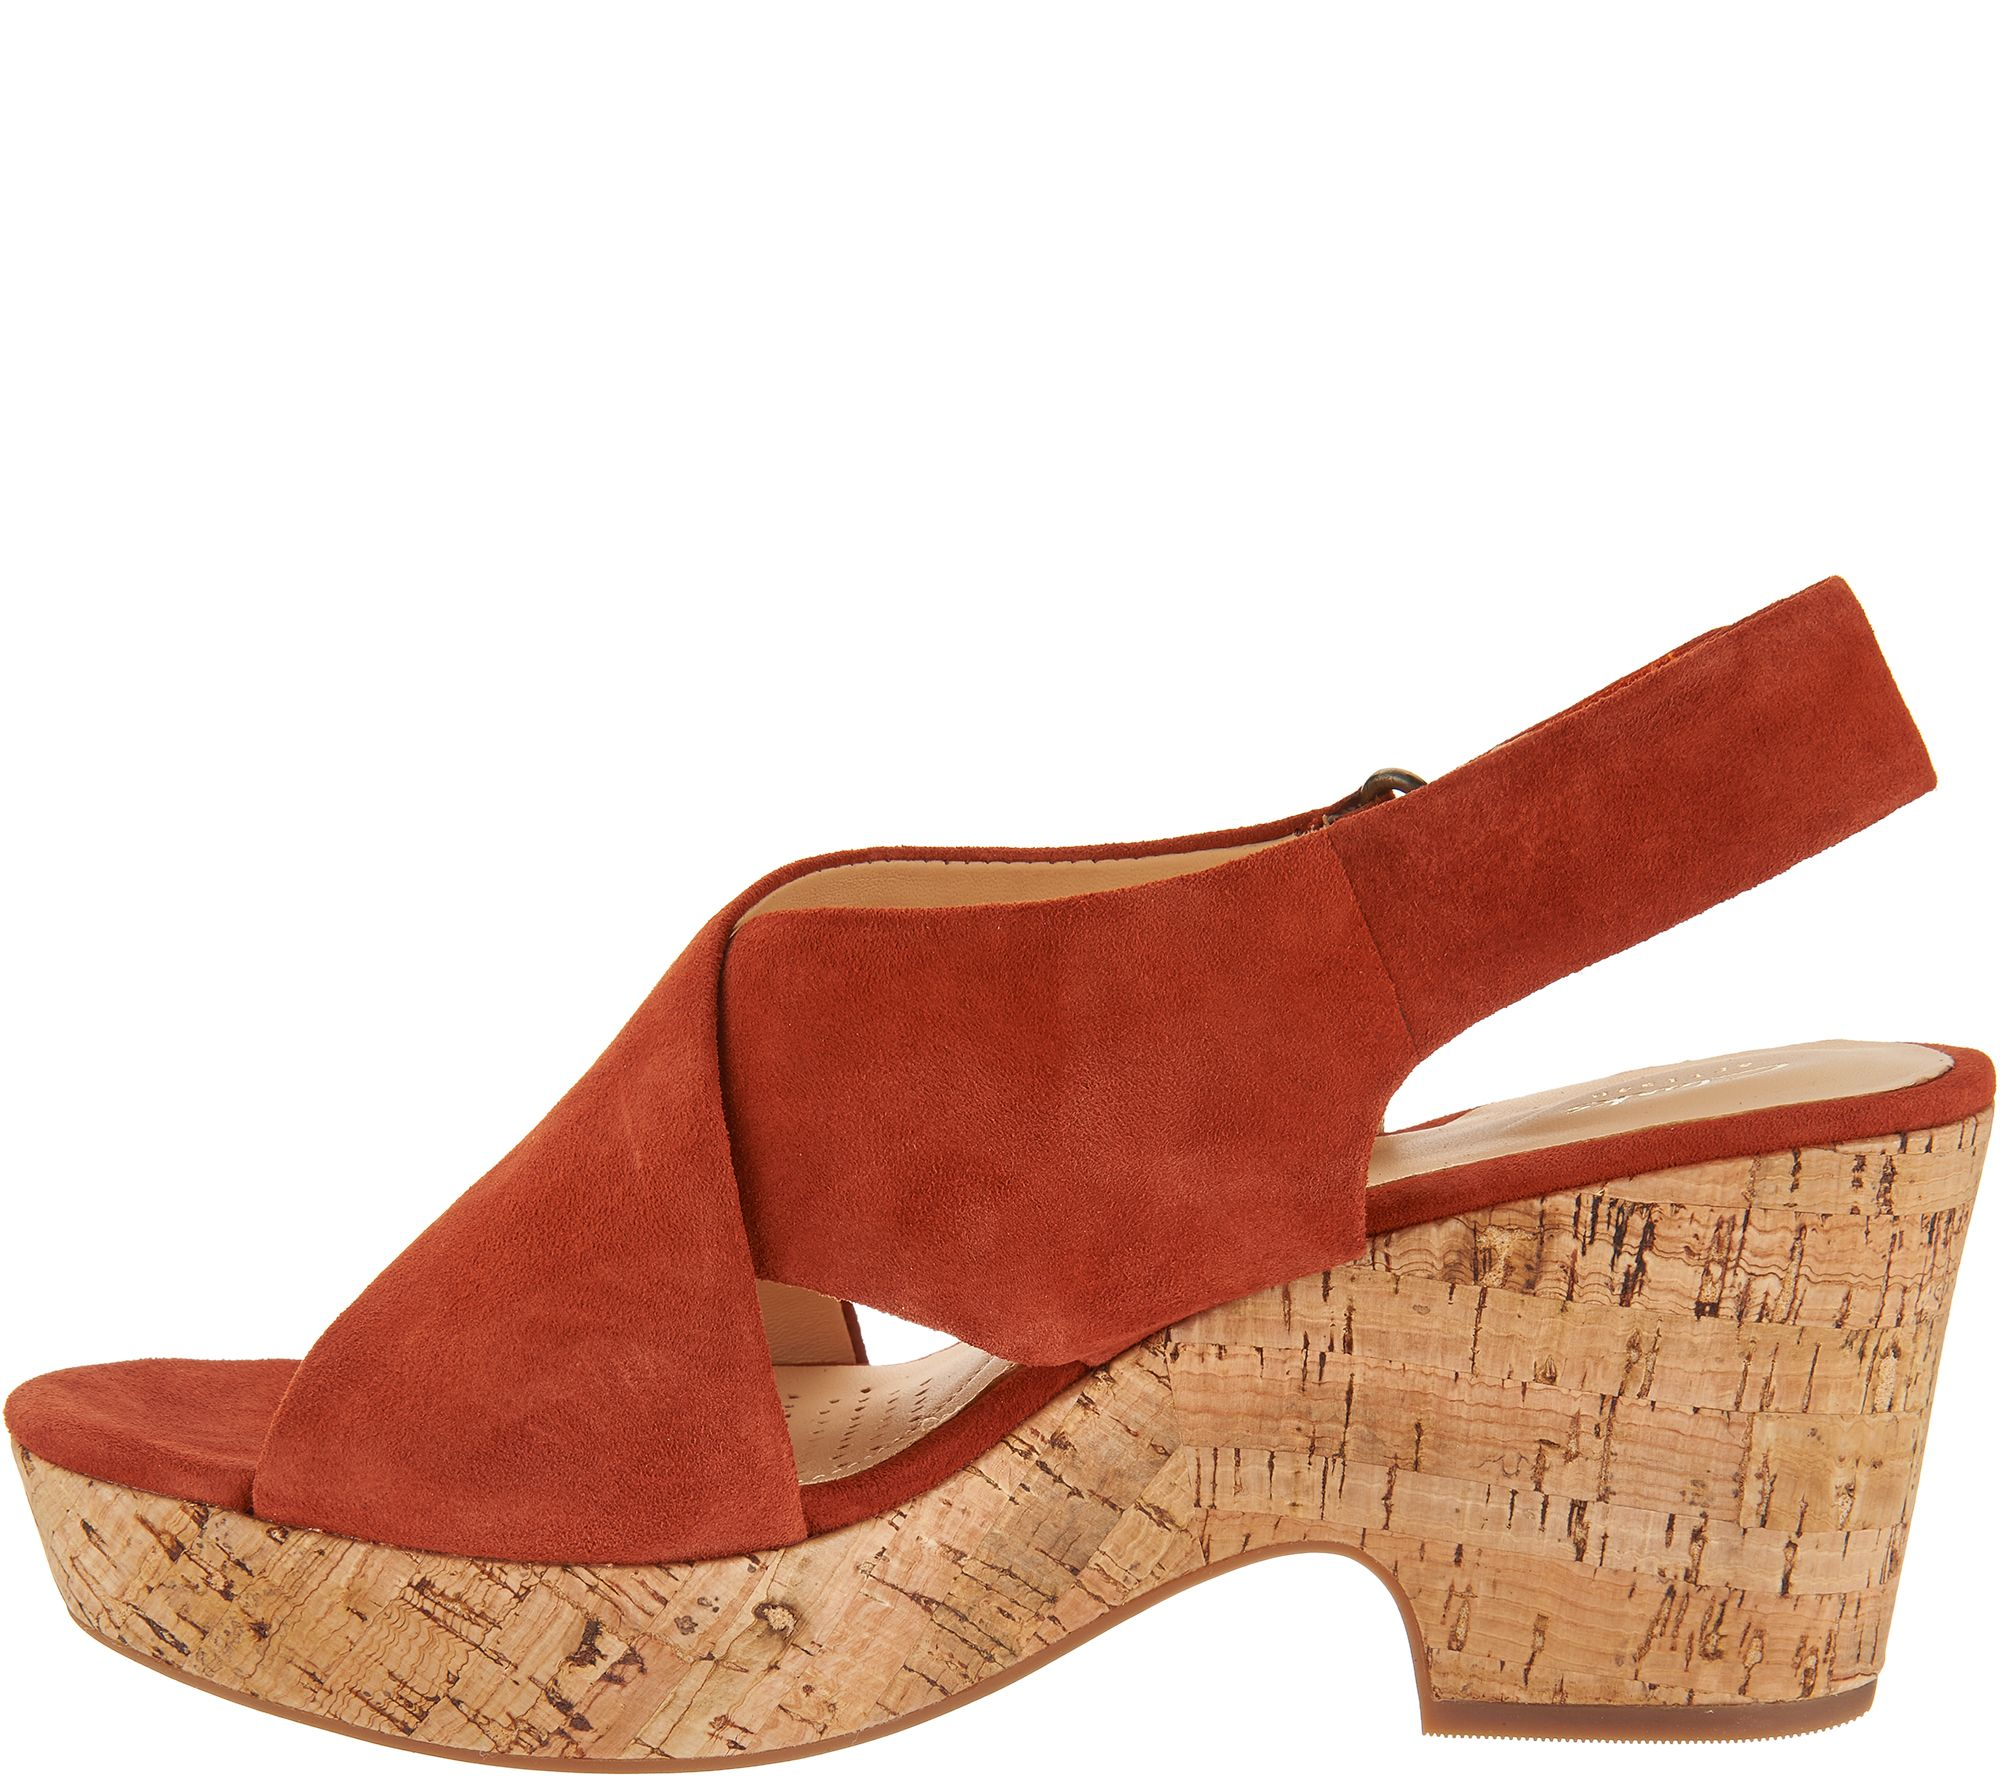 bf22b07d4843 Clarks Artisan Leather Adjustable Wedge Sandals - Maritsa Lara - Page 1 —  QVC.com